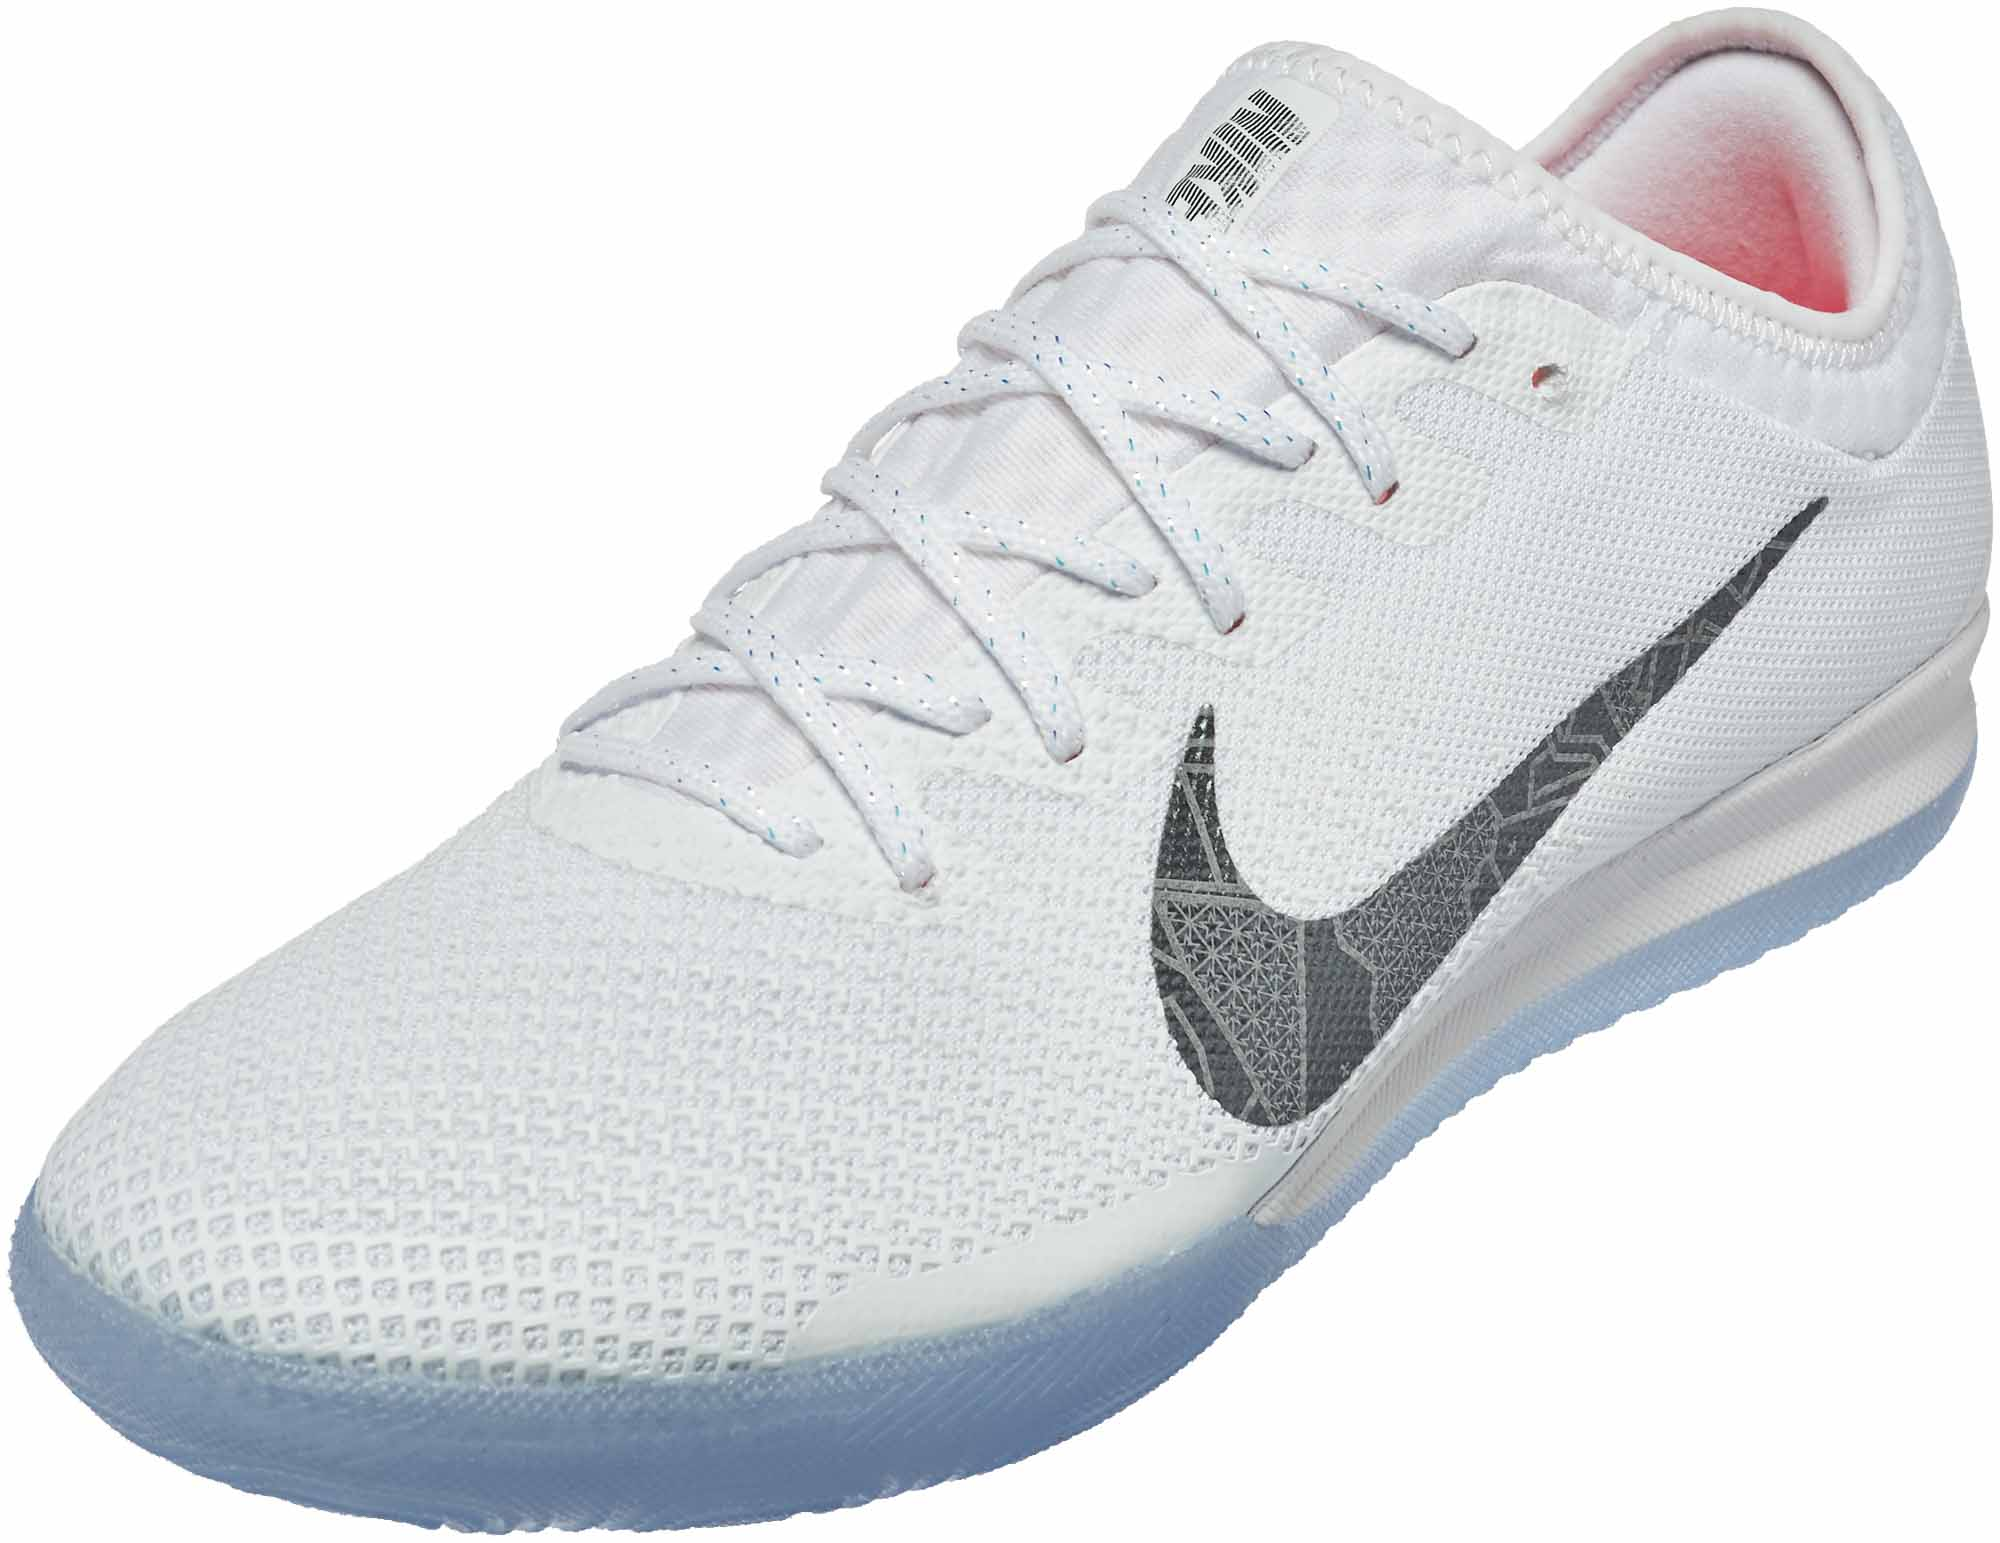 online store b65b9 bbab0 Nike VaporX 12 Pro IC – White/Metallic Cool Grey/Total Orange